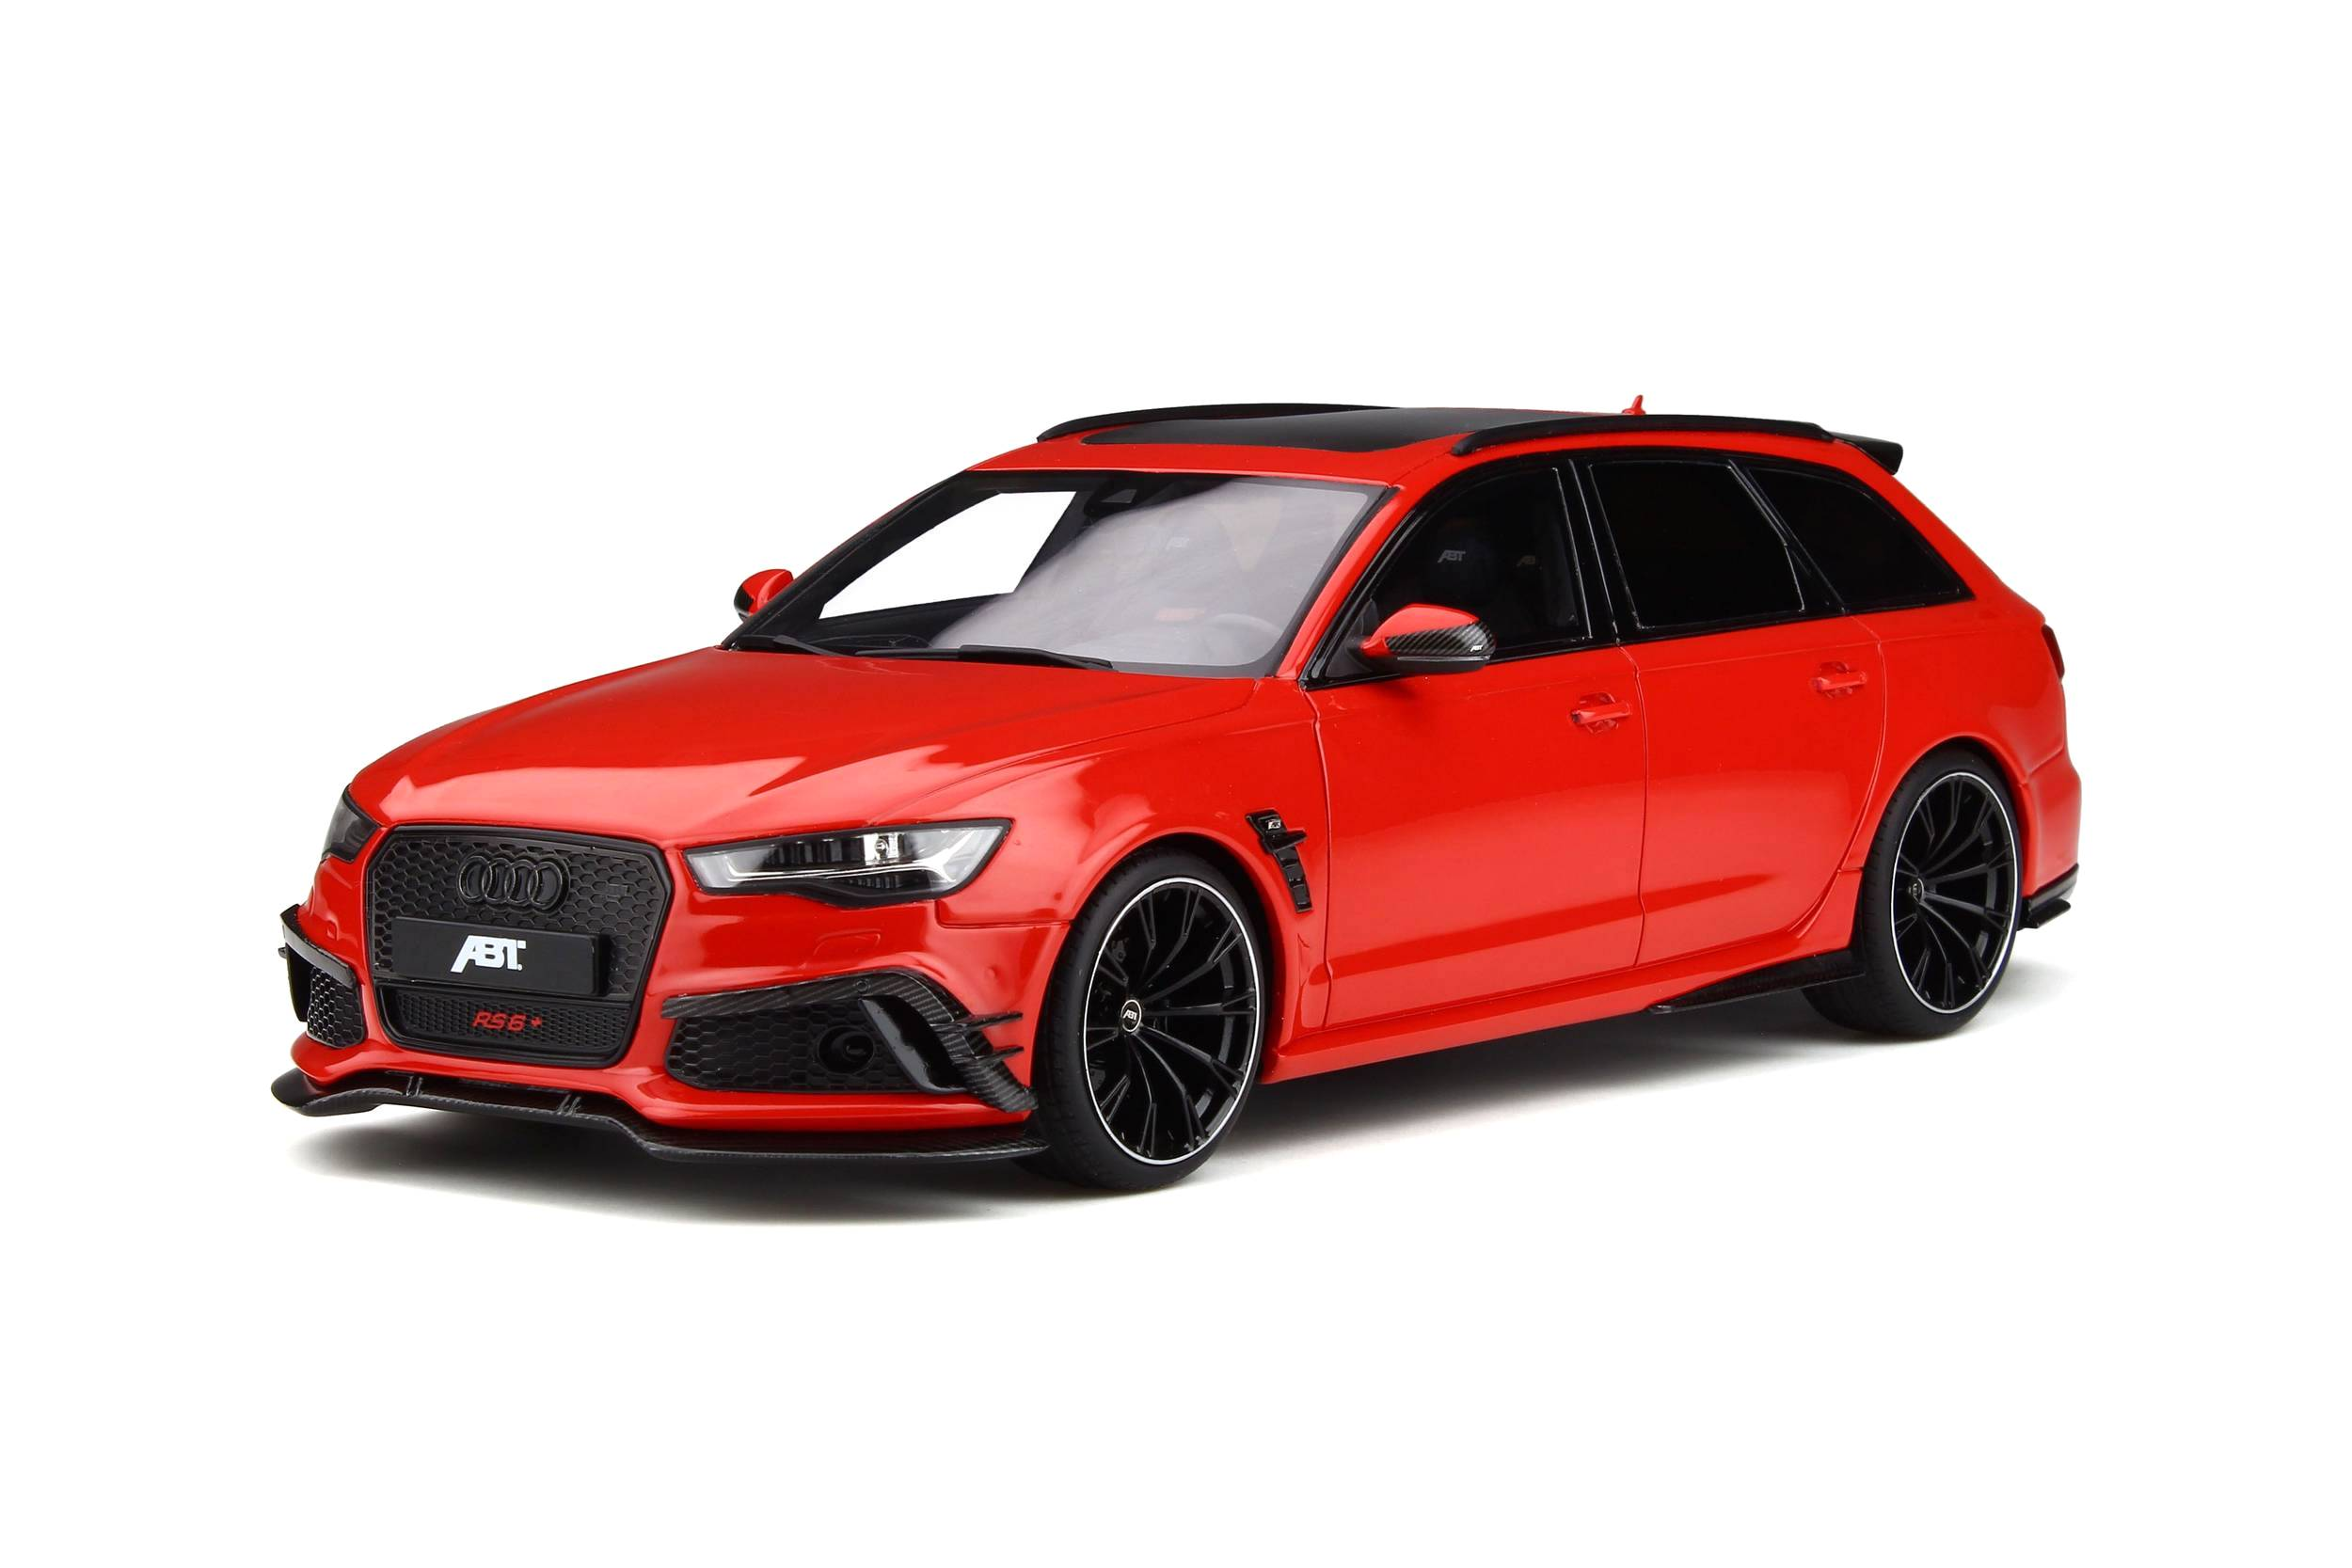 Audi ABT RS6+ 2017 red 1:18 GT Spirit